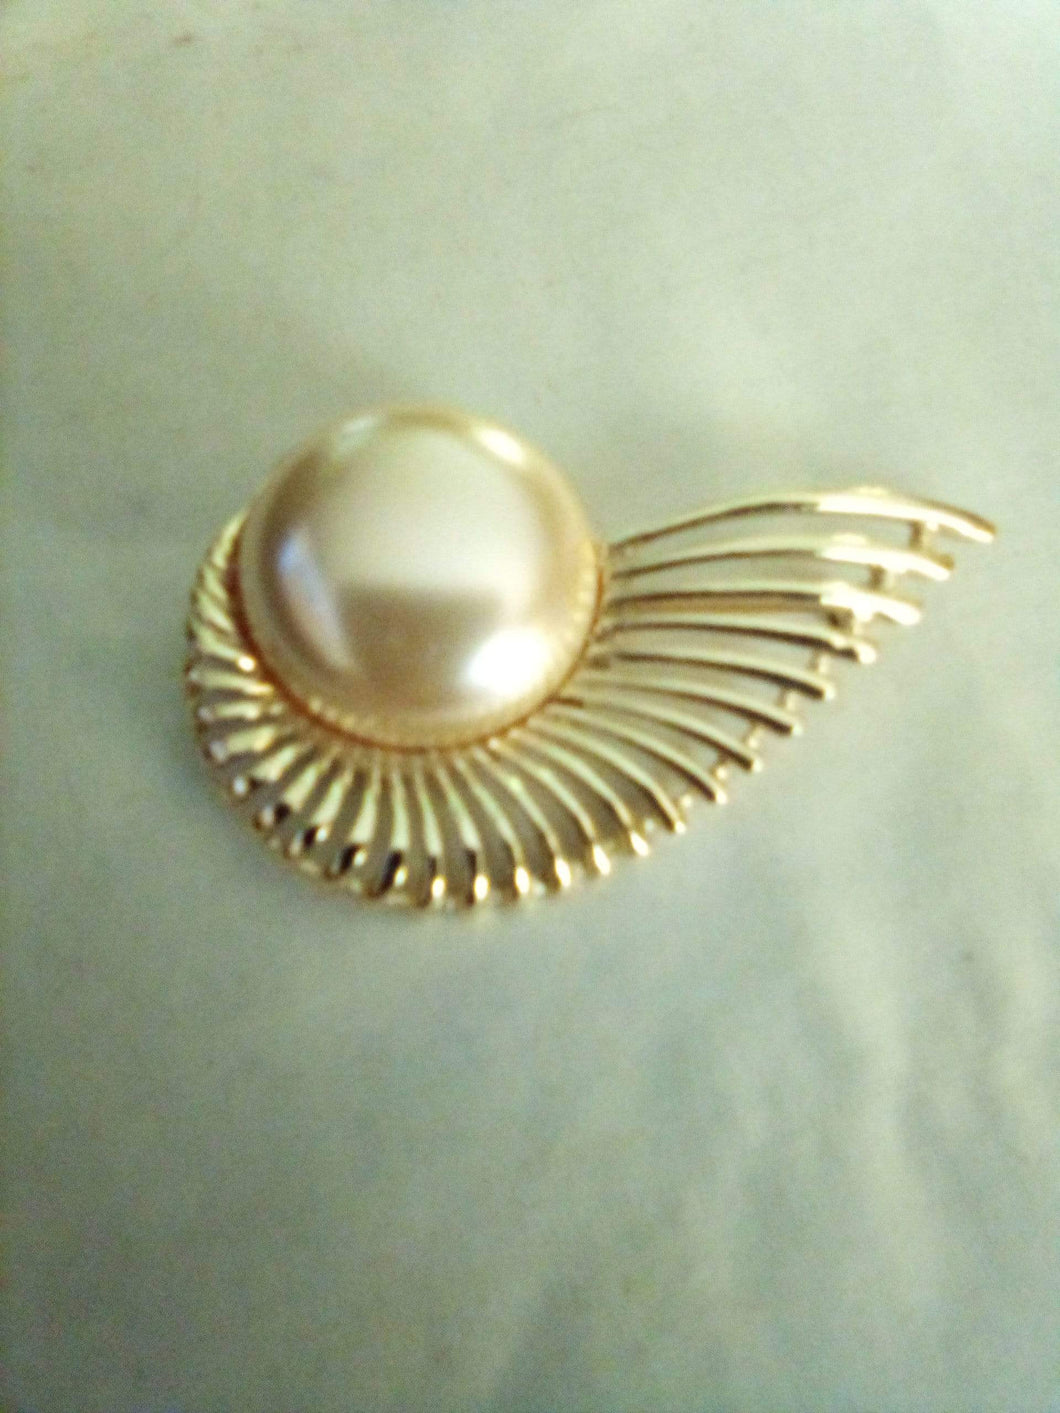 Sarah Coventry marked vintage dressy broach - B&P'sringsnthings